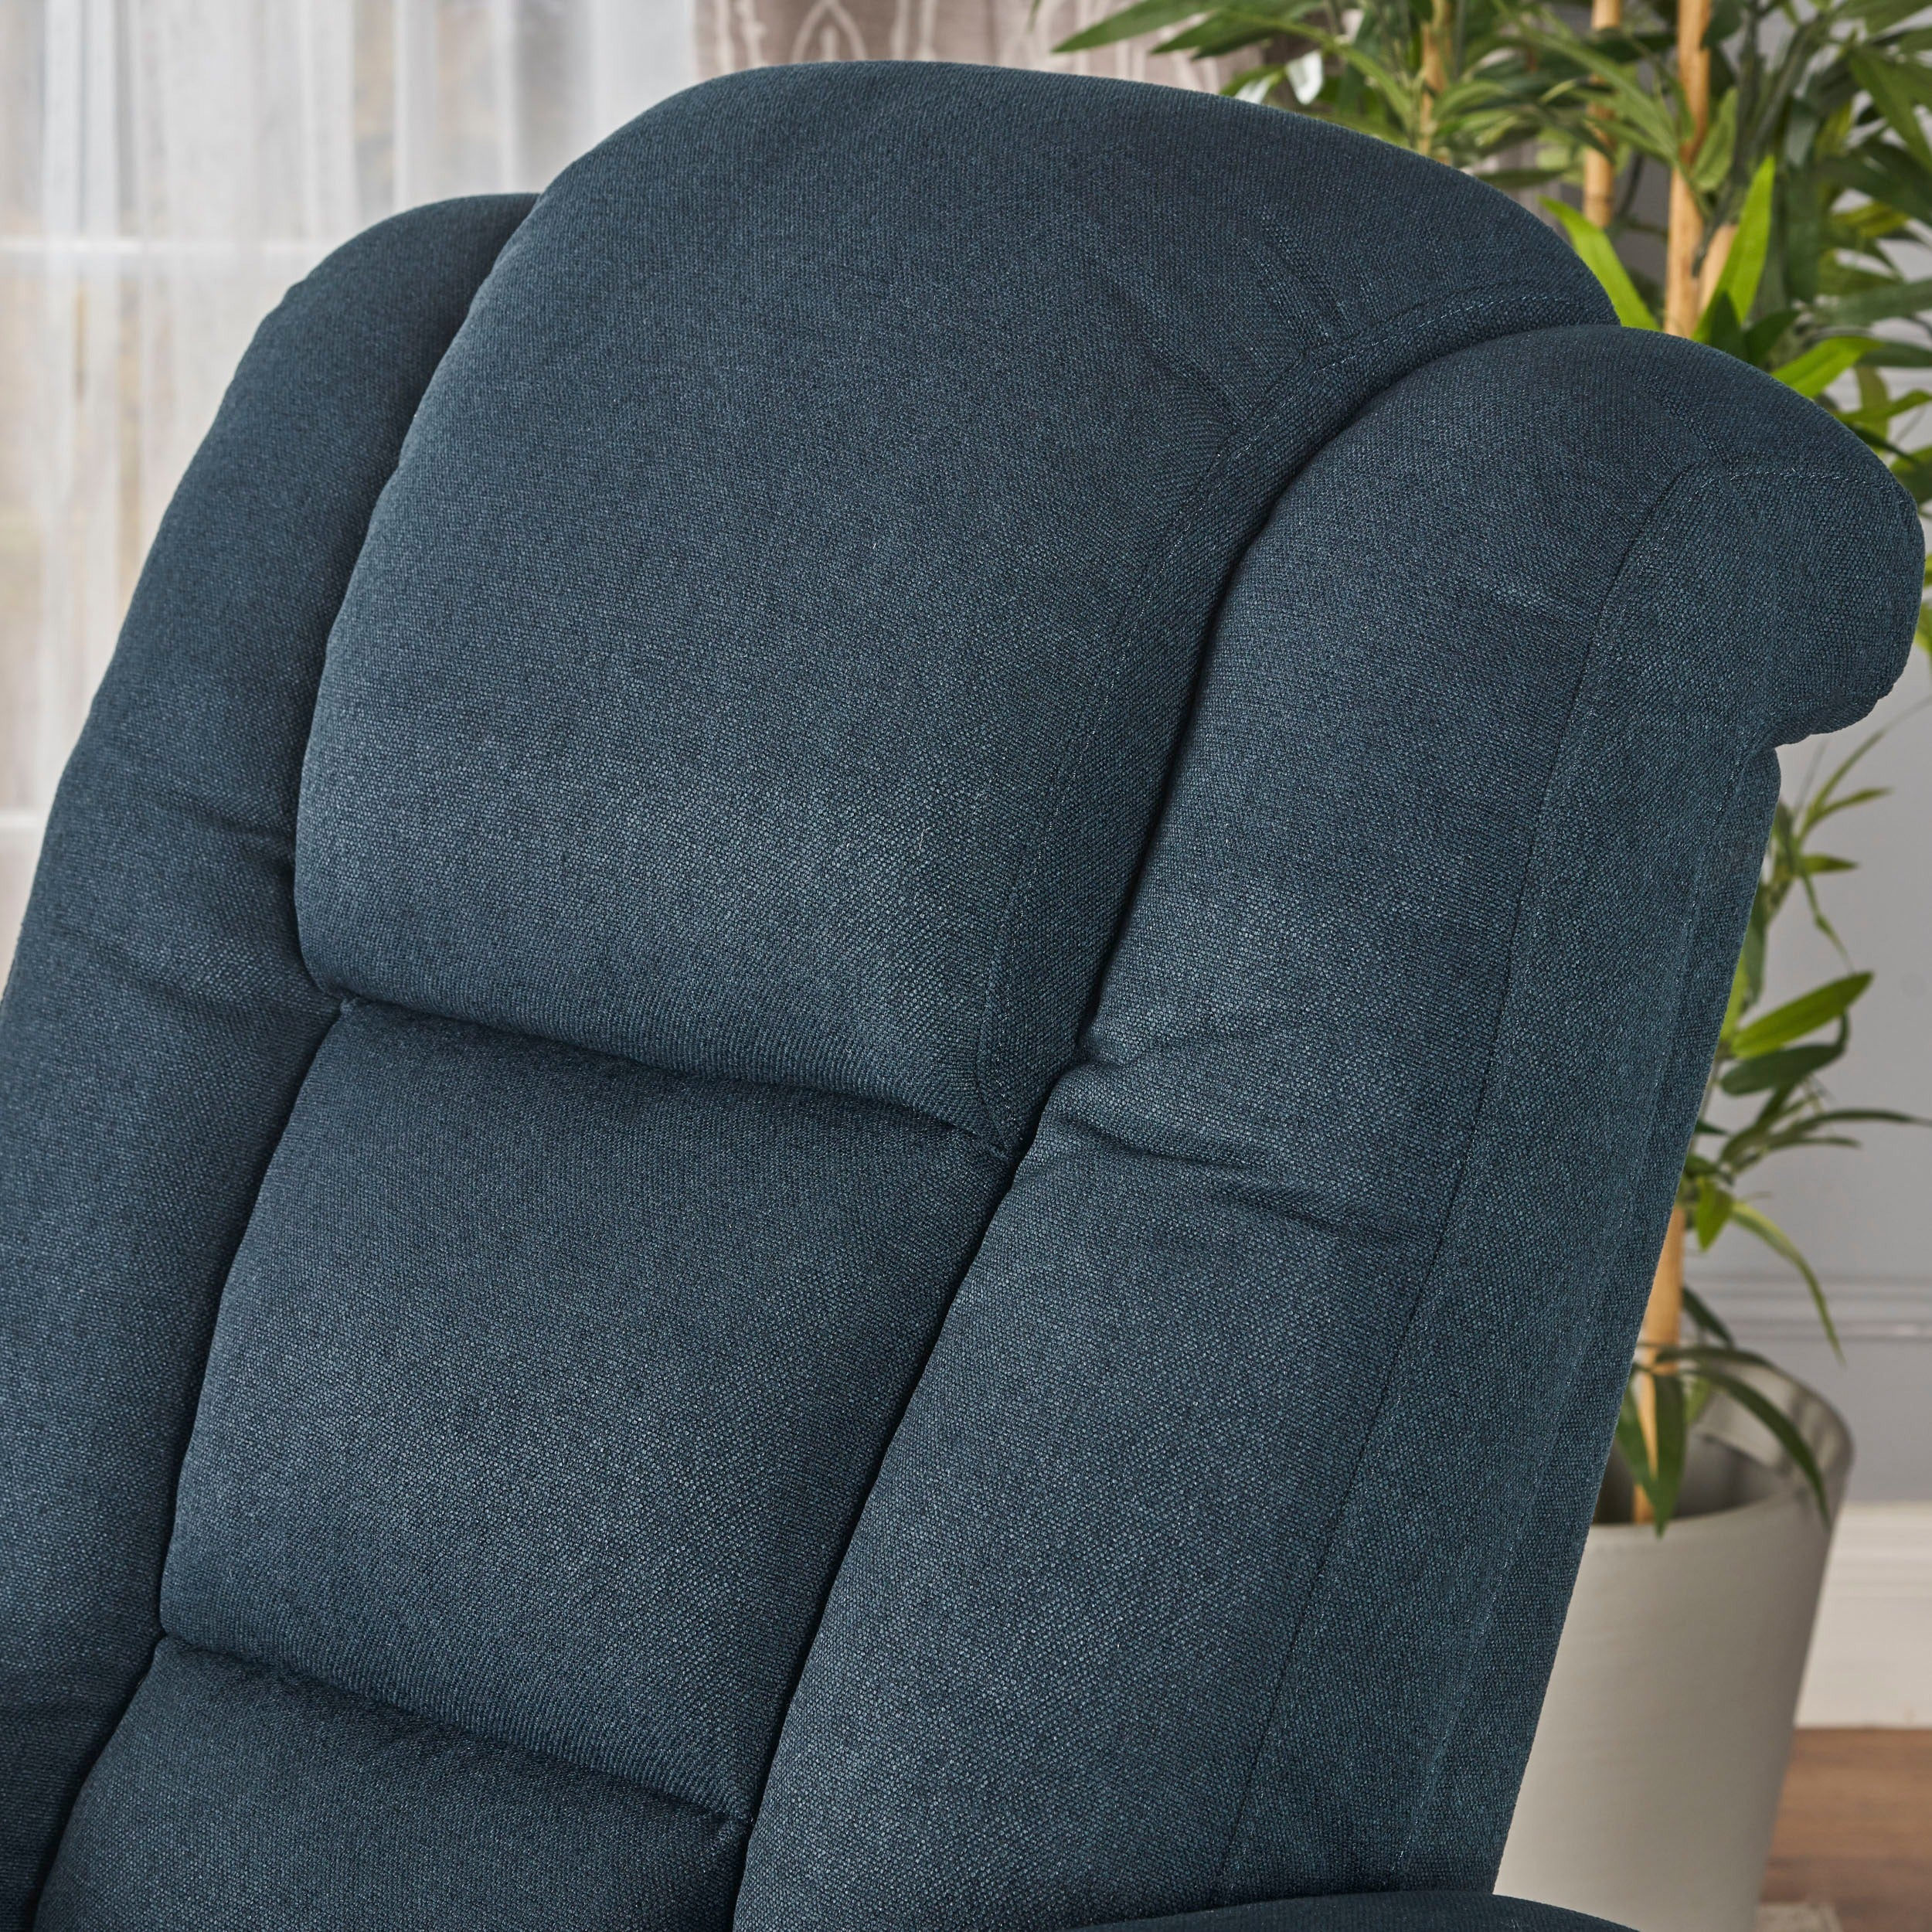 Shop Emersyn Fabric Power Recliner With Arm Storage U0026 USB Cord By  Christopher Knight Home   On Sale   Free Shipping Today   Overstock.com    17570814